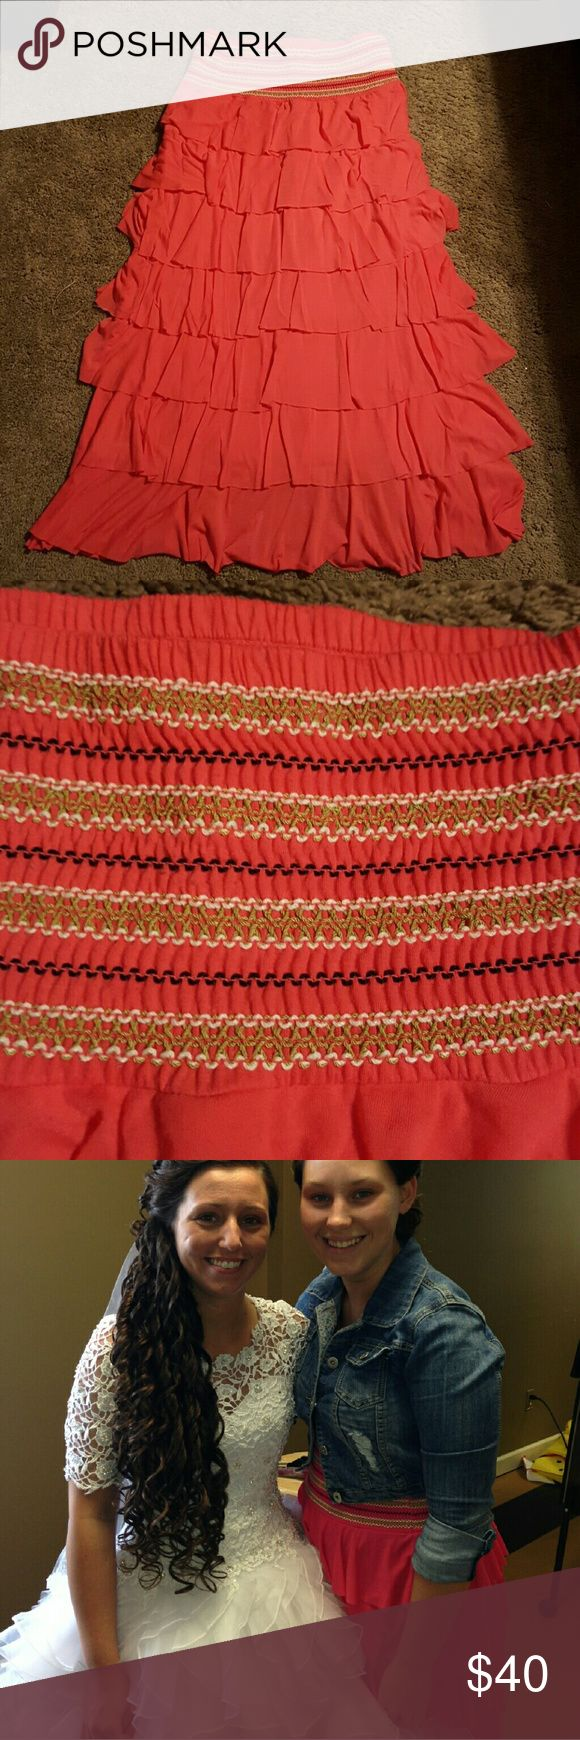 Beautiful long bright pink ruffled skirt Beautiful long bright pink ruffled skirt with elastic band at top. Band has black, white and green designs as pictured above. Worn only a few times. Is in excellent condition. Willing to negotiate price. Cristina Skirts Maxi